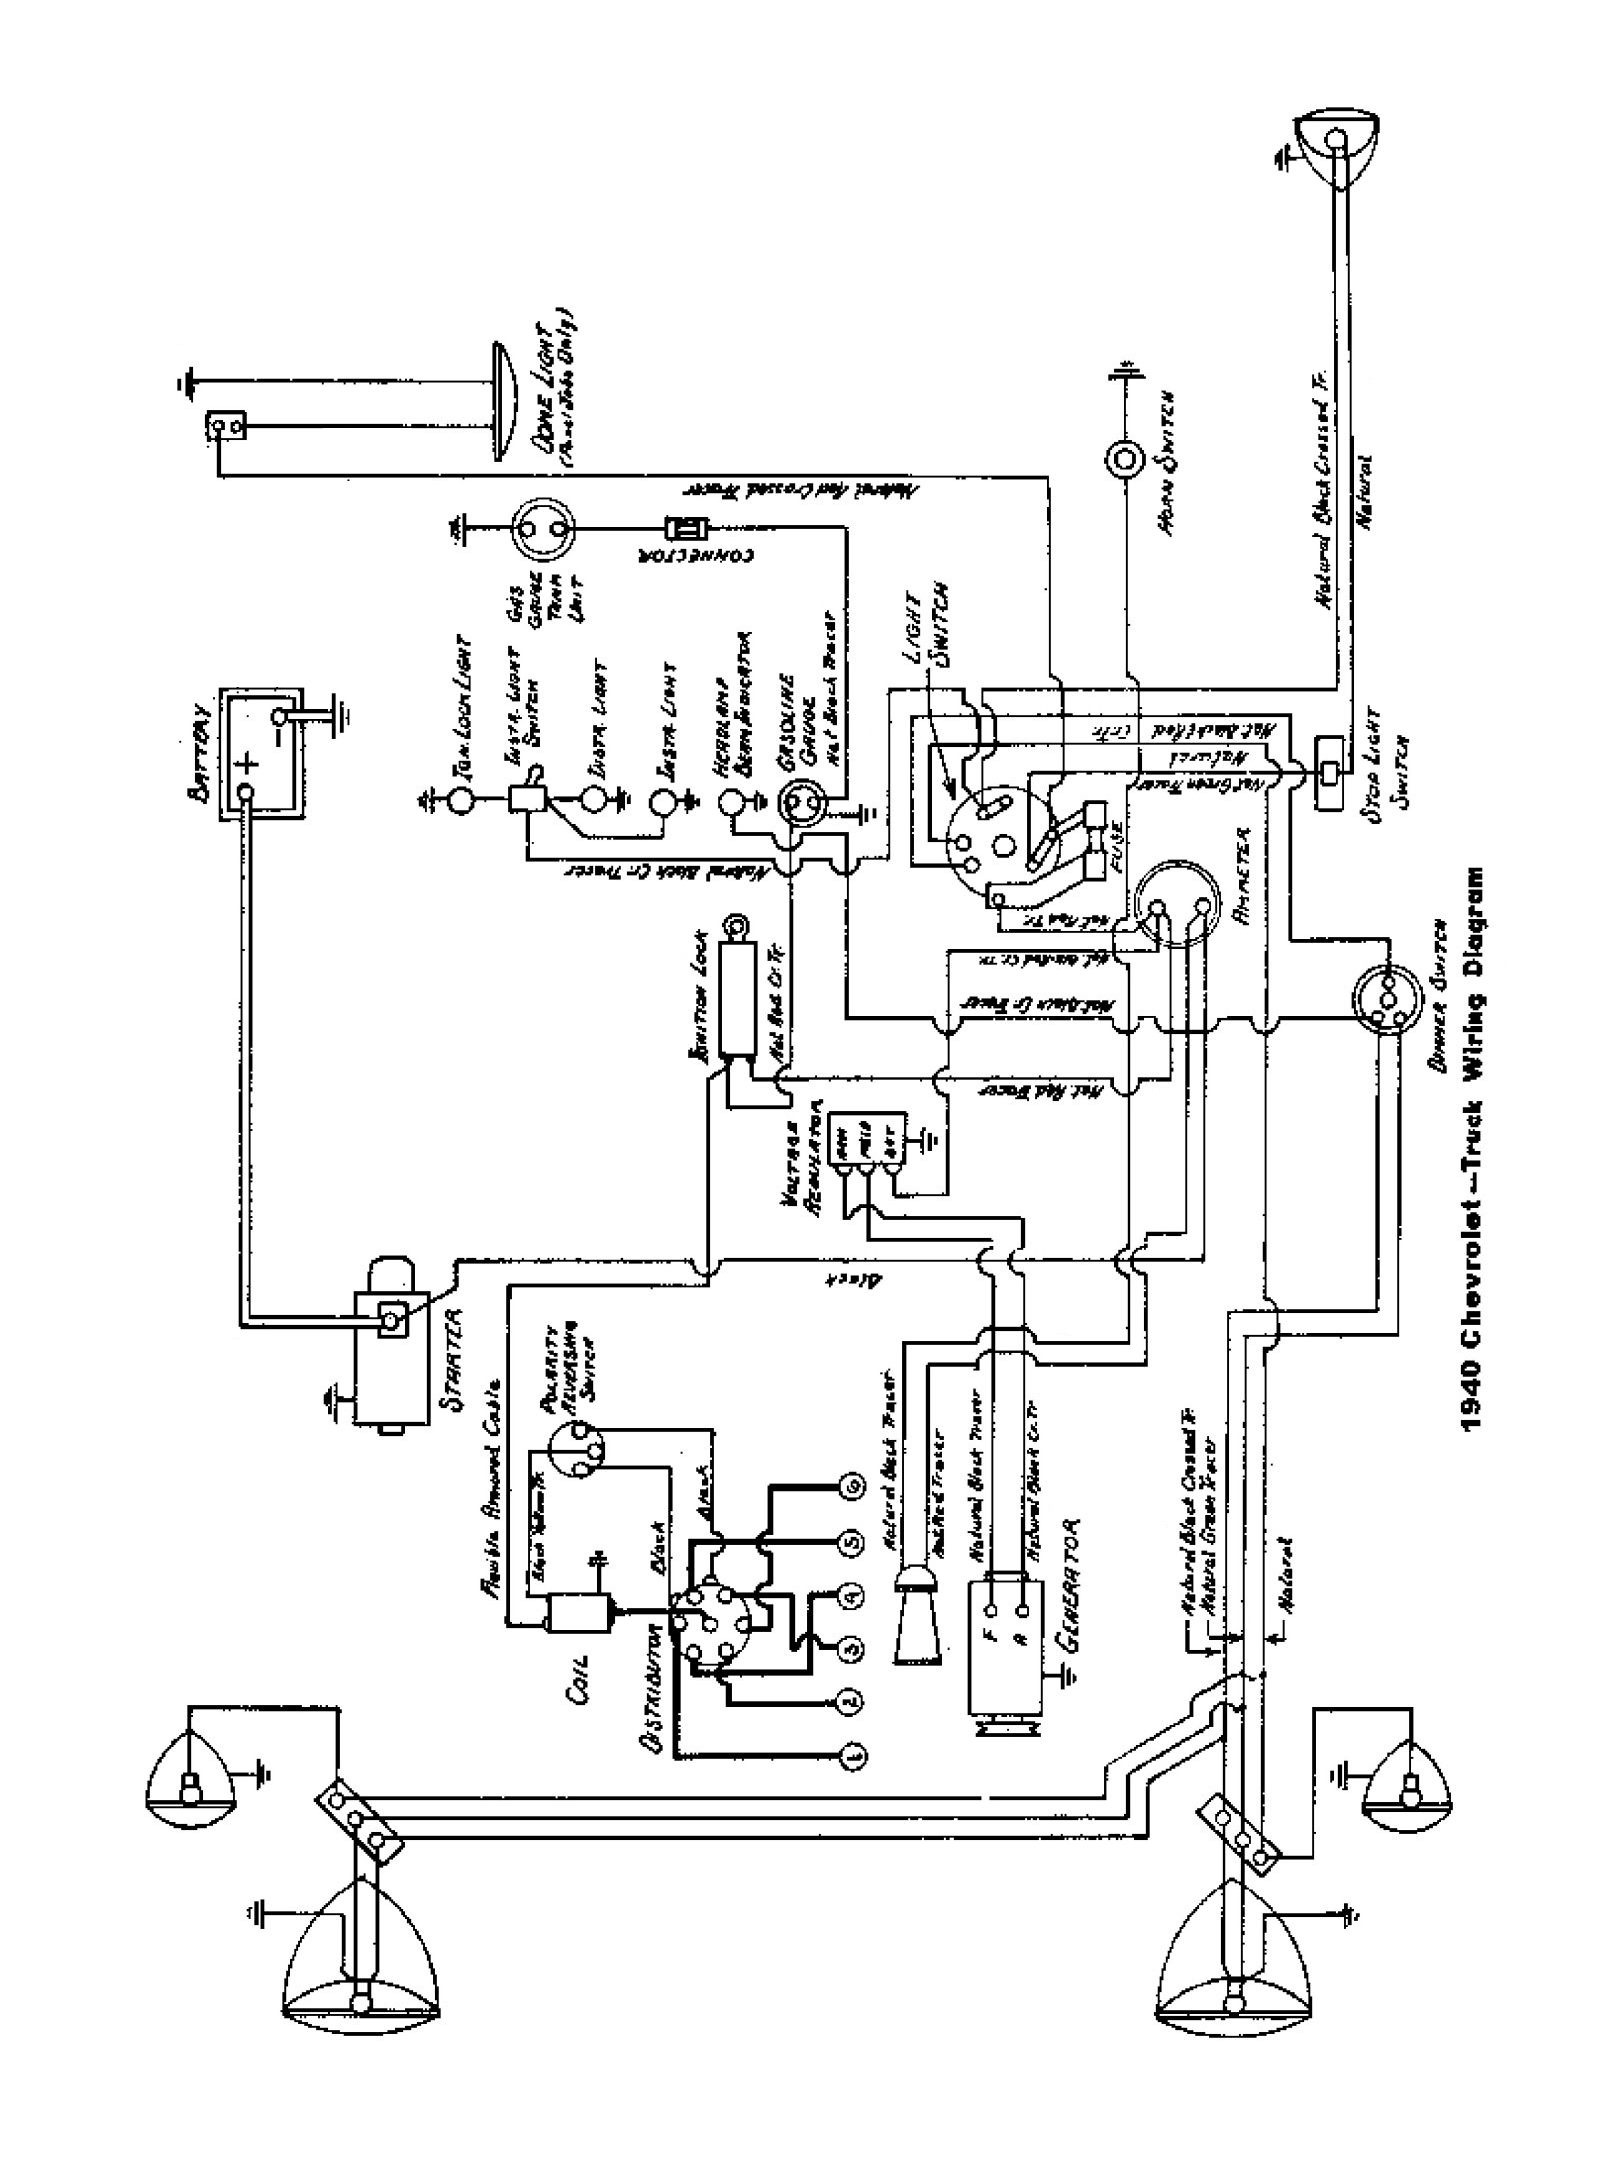 Chevrolet Wiring Schematics Diagram Third Level 1997 Chevy Malibu Diagrams For 97 K3500